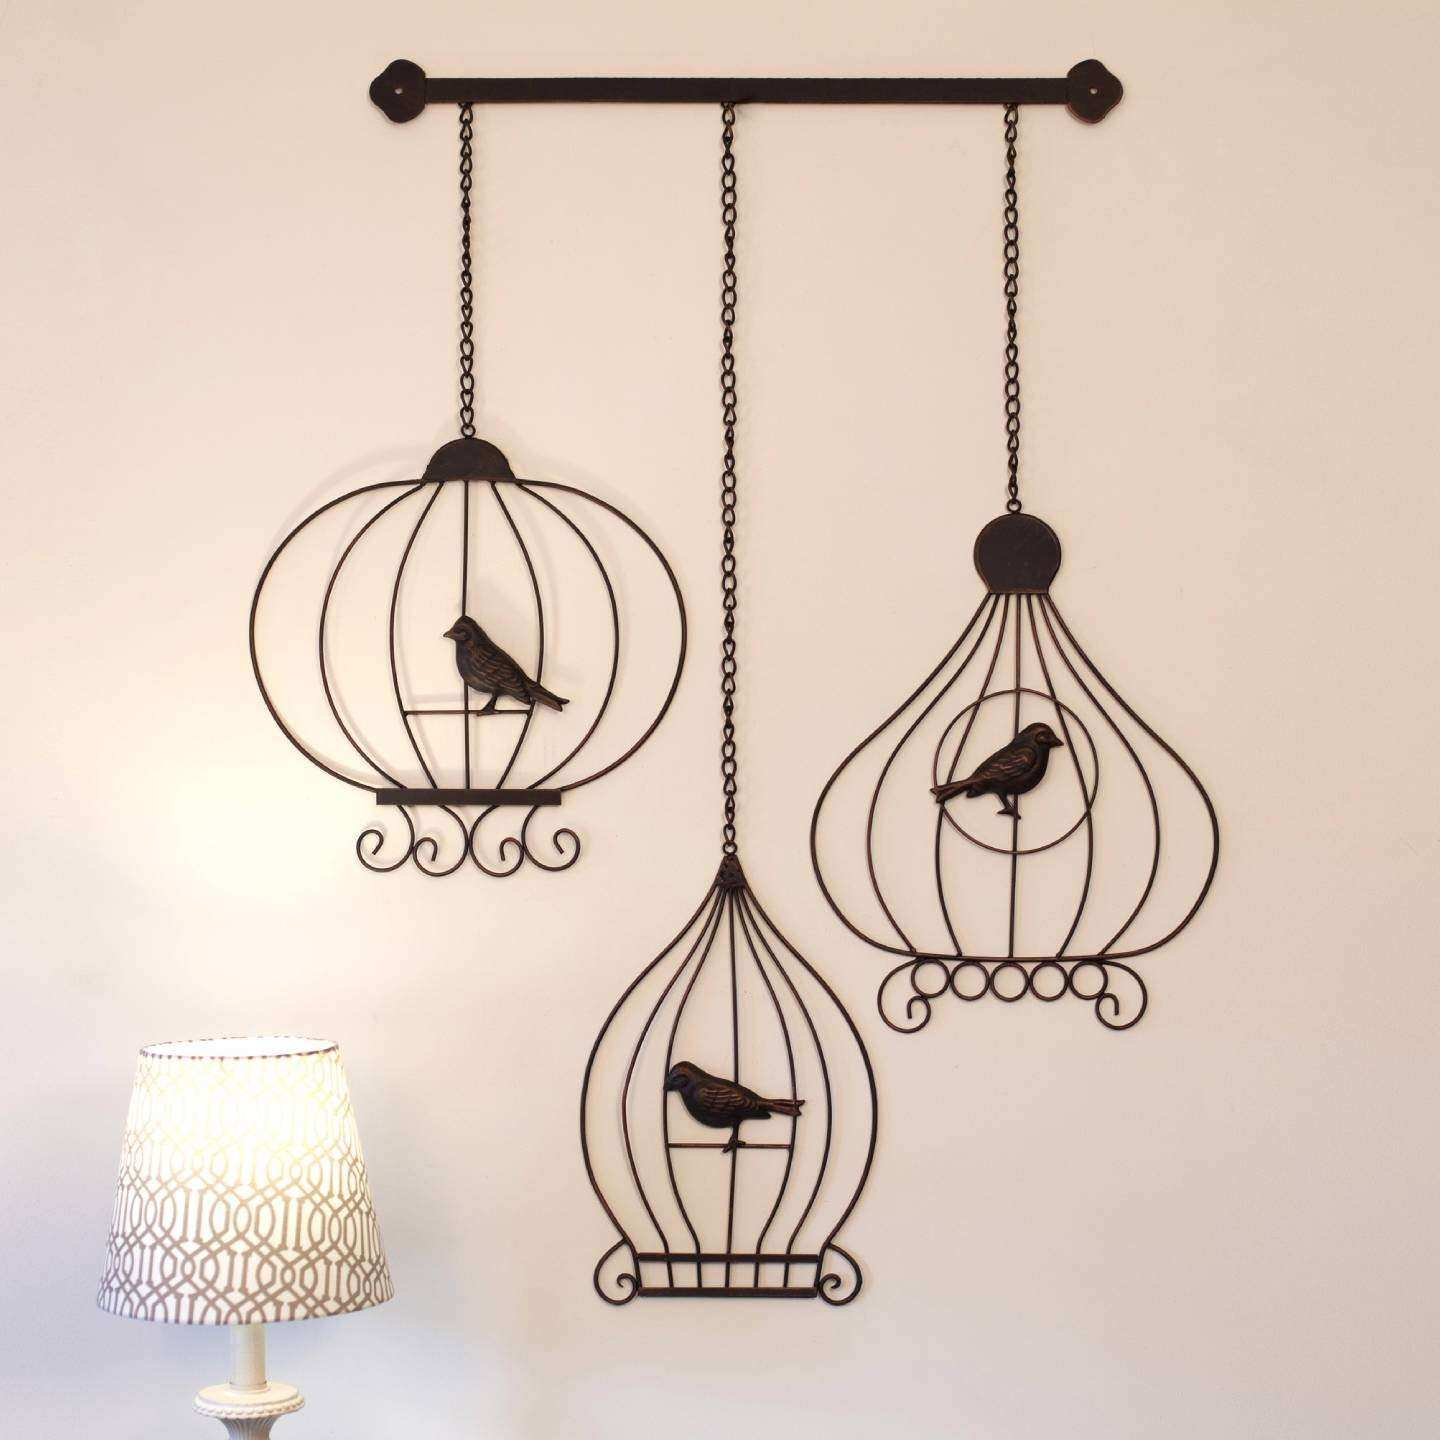 Wrought Iron Outdoor Wall Decor Beautiful Wrought Iron Metal Wall Art 52cm Vintage Birdcages